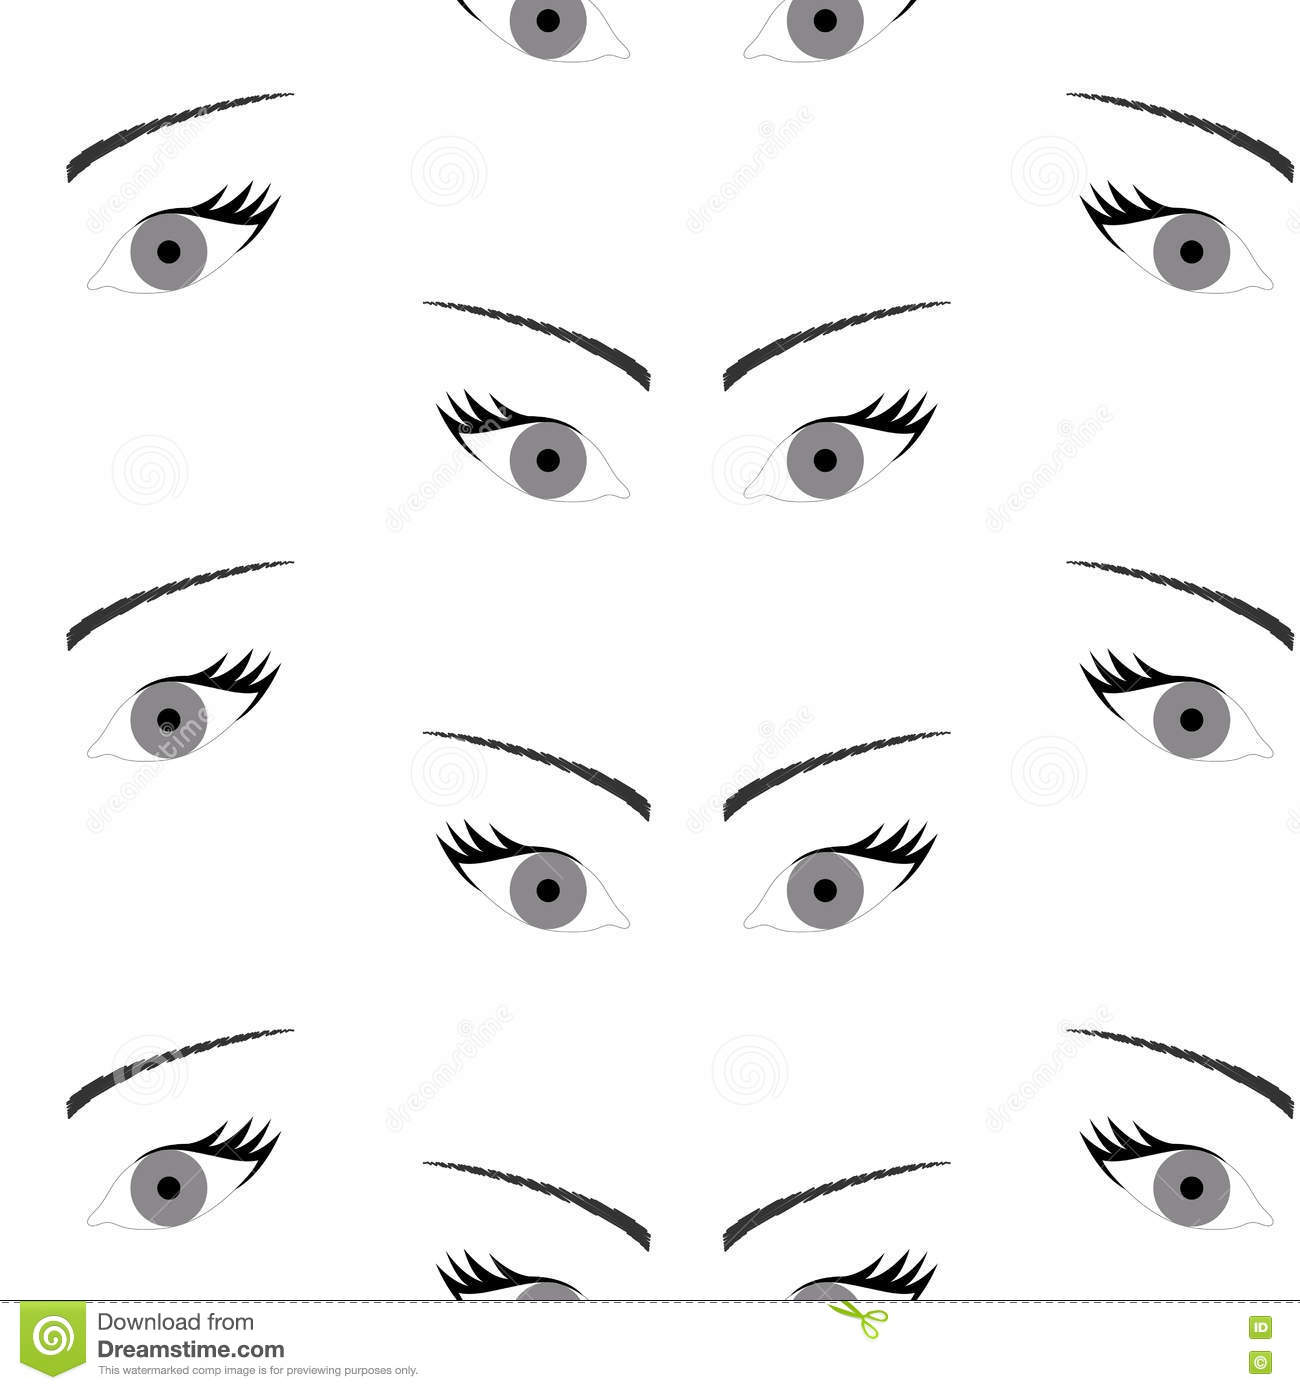 Seamless background with beautiful eyes endless eye pattern stock download seamless background with beautiful eyes endless eye pattern stock vector illustration of human ccuart Images